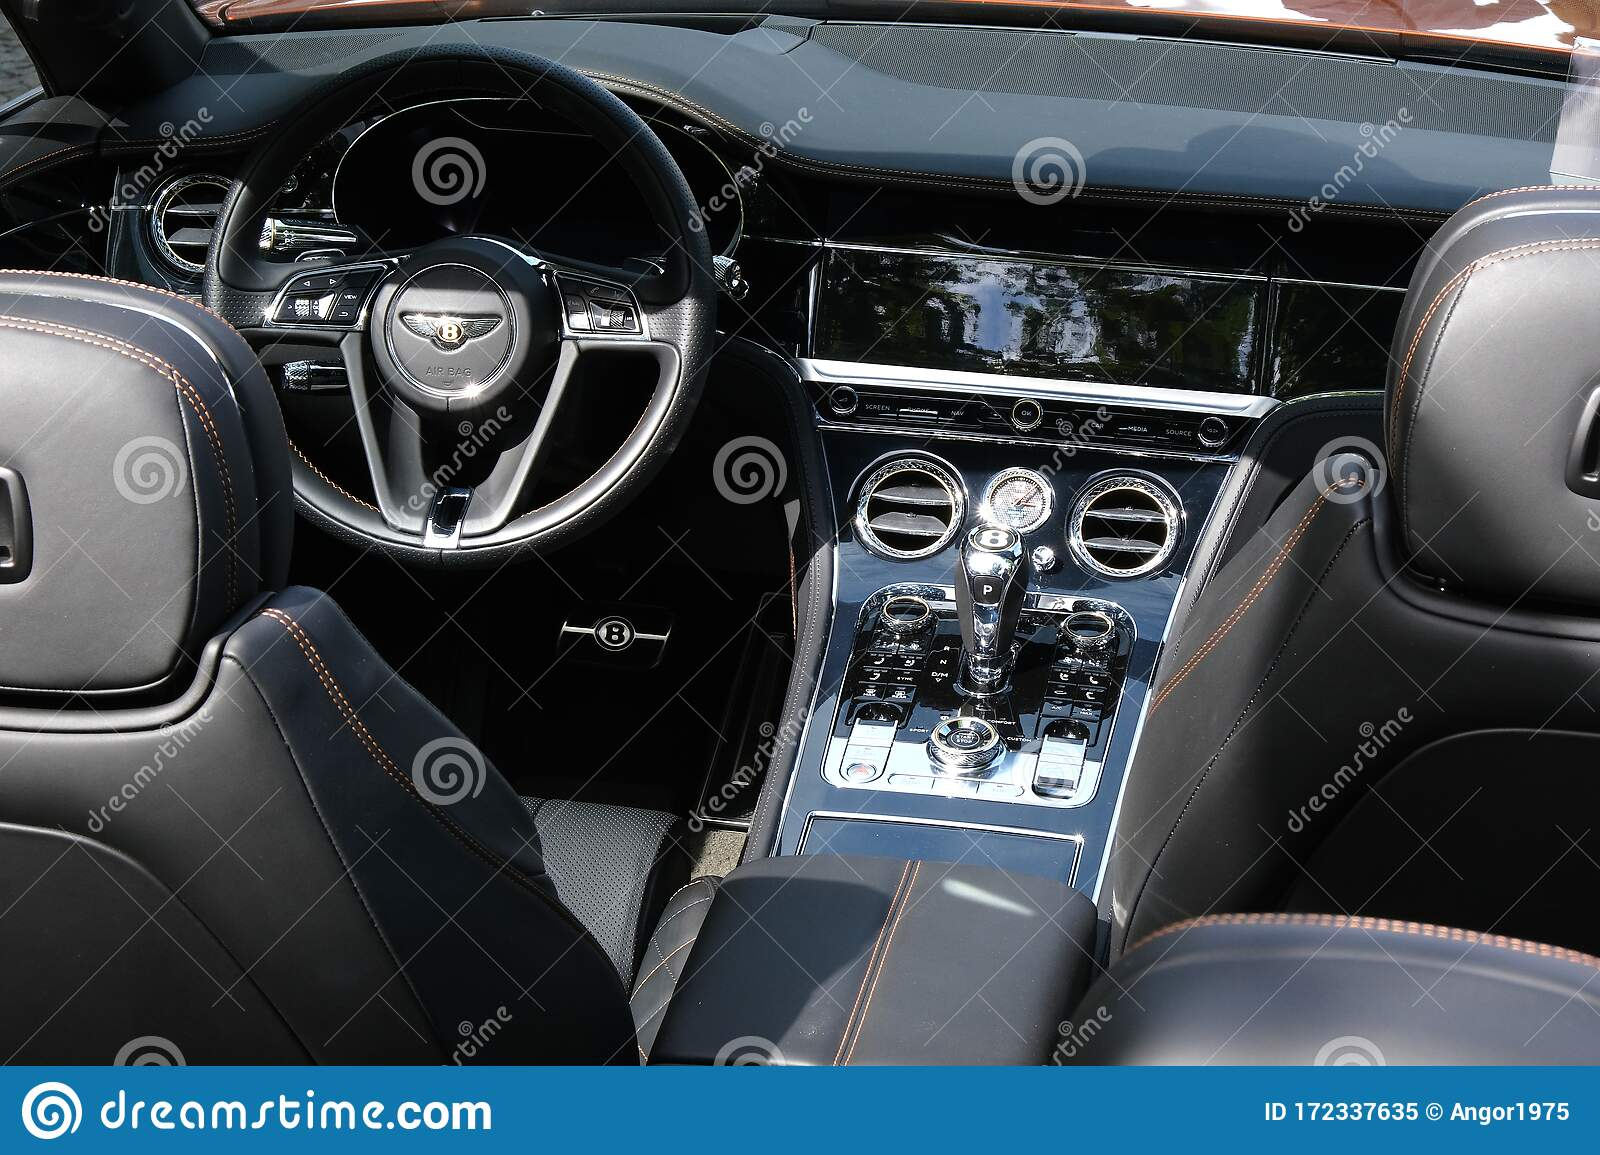 Steering Wheel And Controls In Interior Of Exclusive Luxury Bentley Modern Car Ckose Up Editorial Image Image Of Interior Luxury 172337635